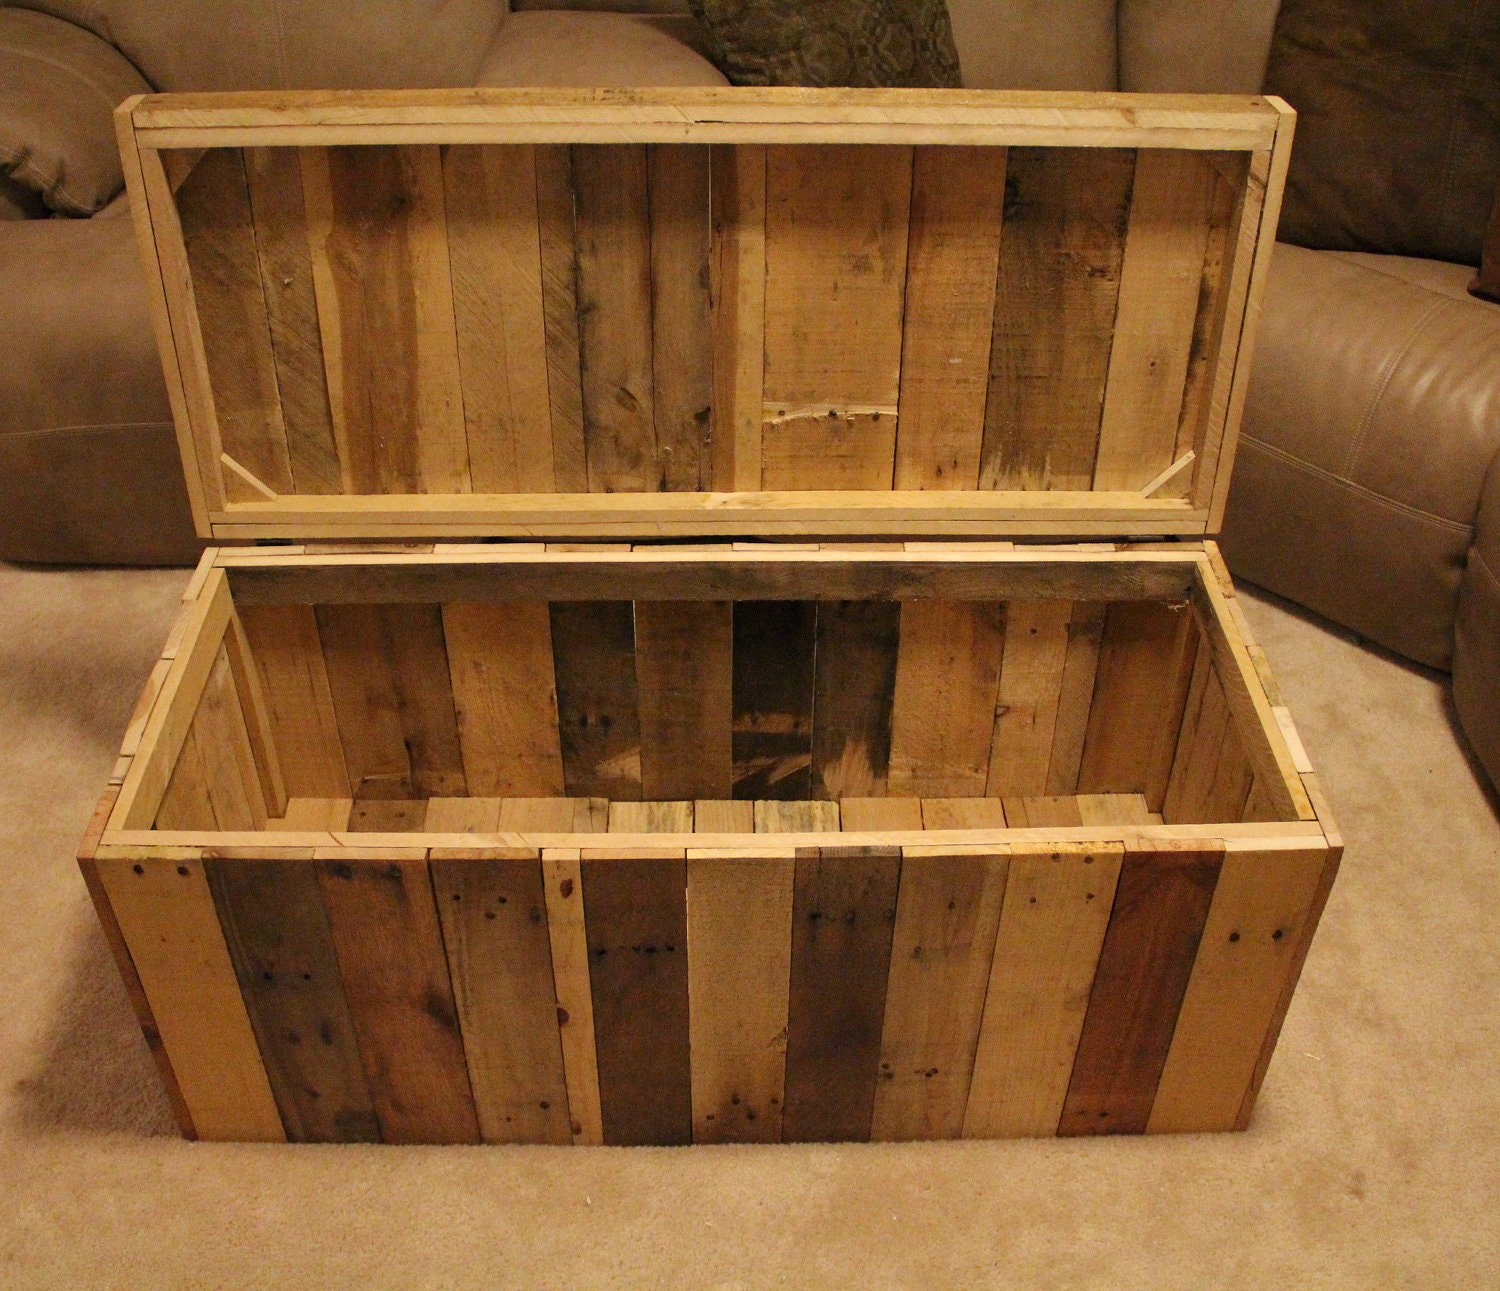 Wooden Furniture For Sale: Reclaimed Pallet Wood Furniture Storage Chest